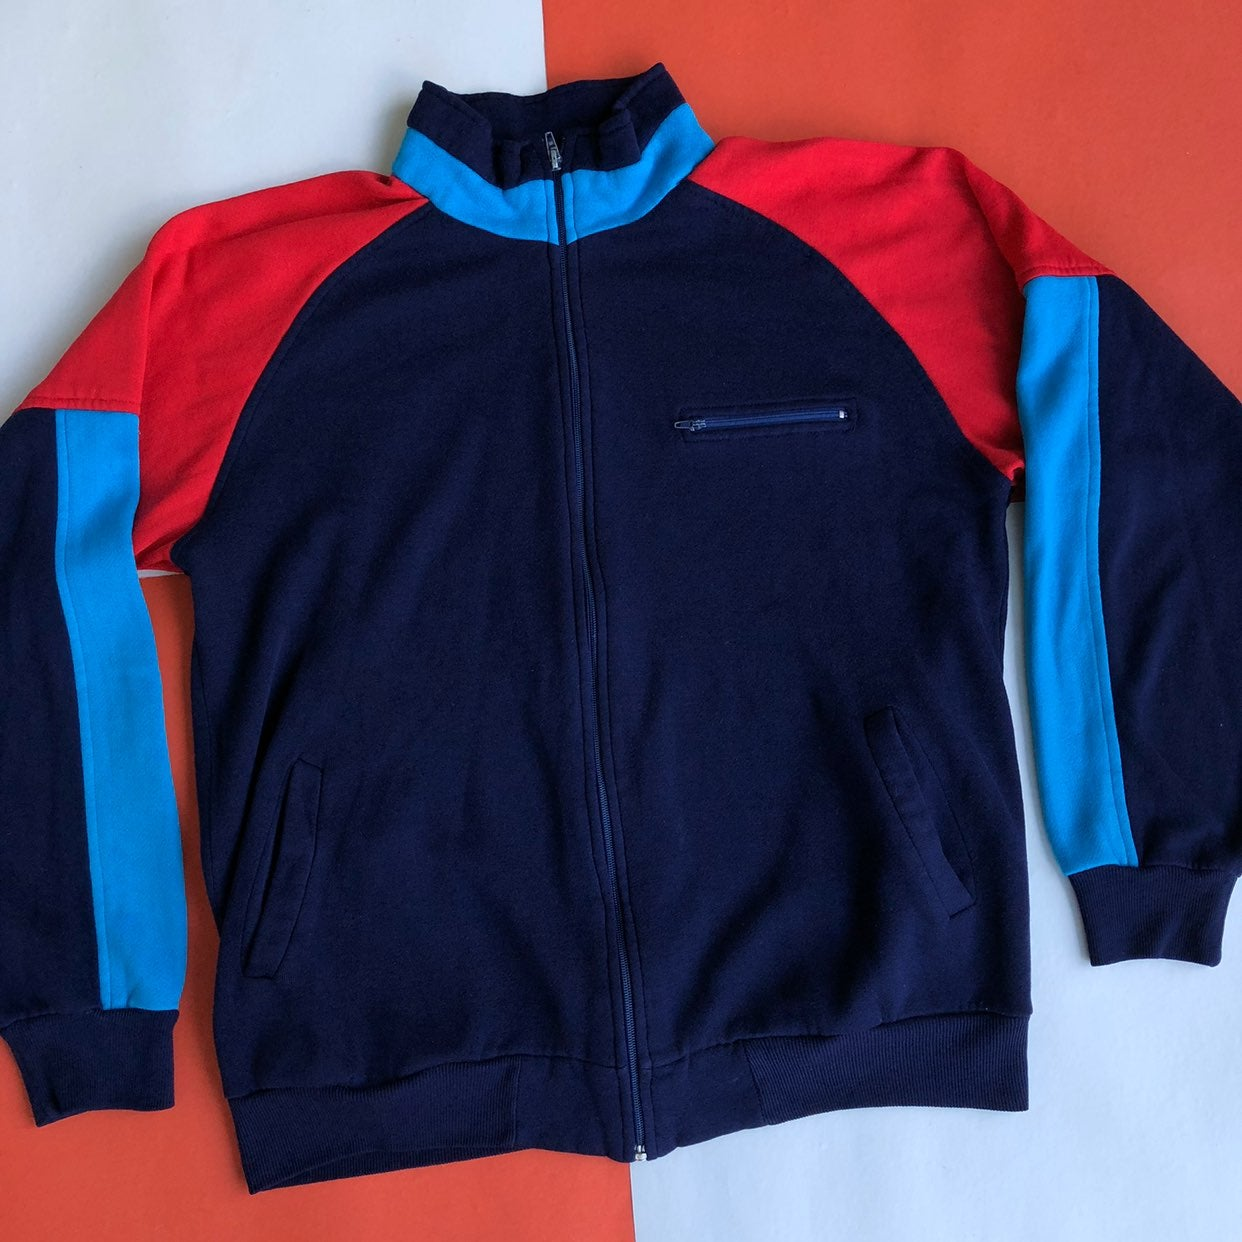 VTG 90s COLOR BLOCK ZIP TRACK JACKET